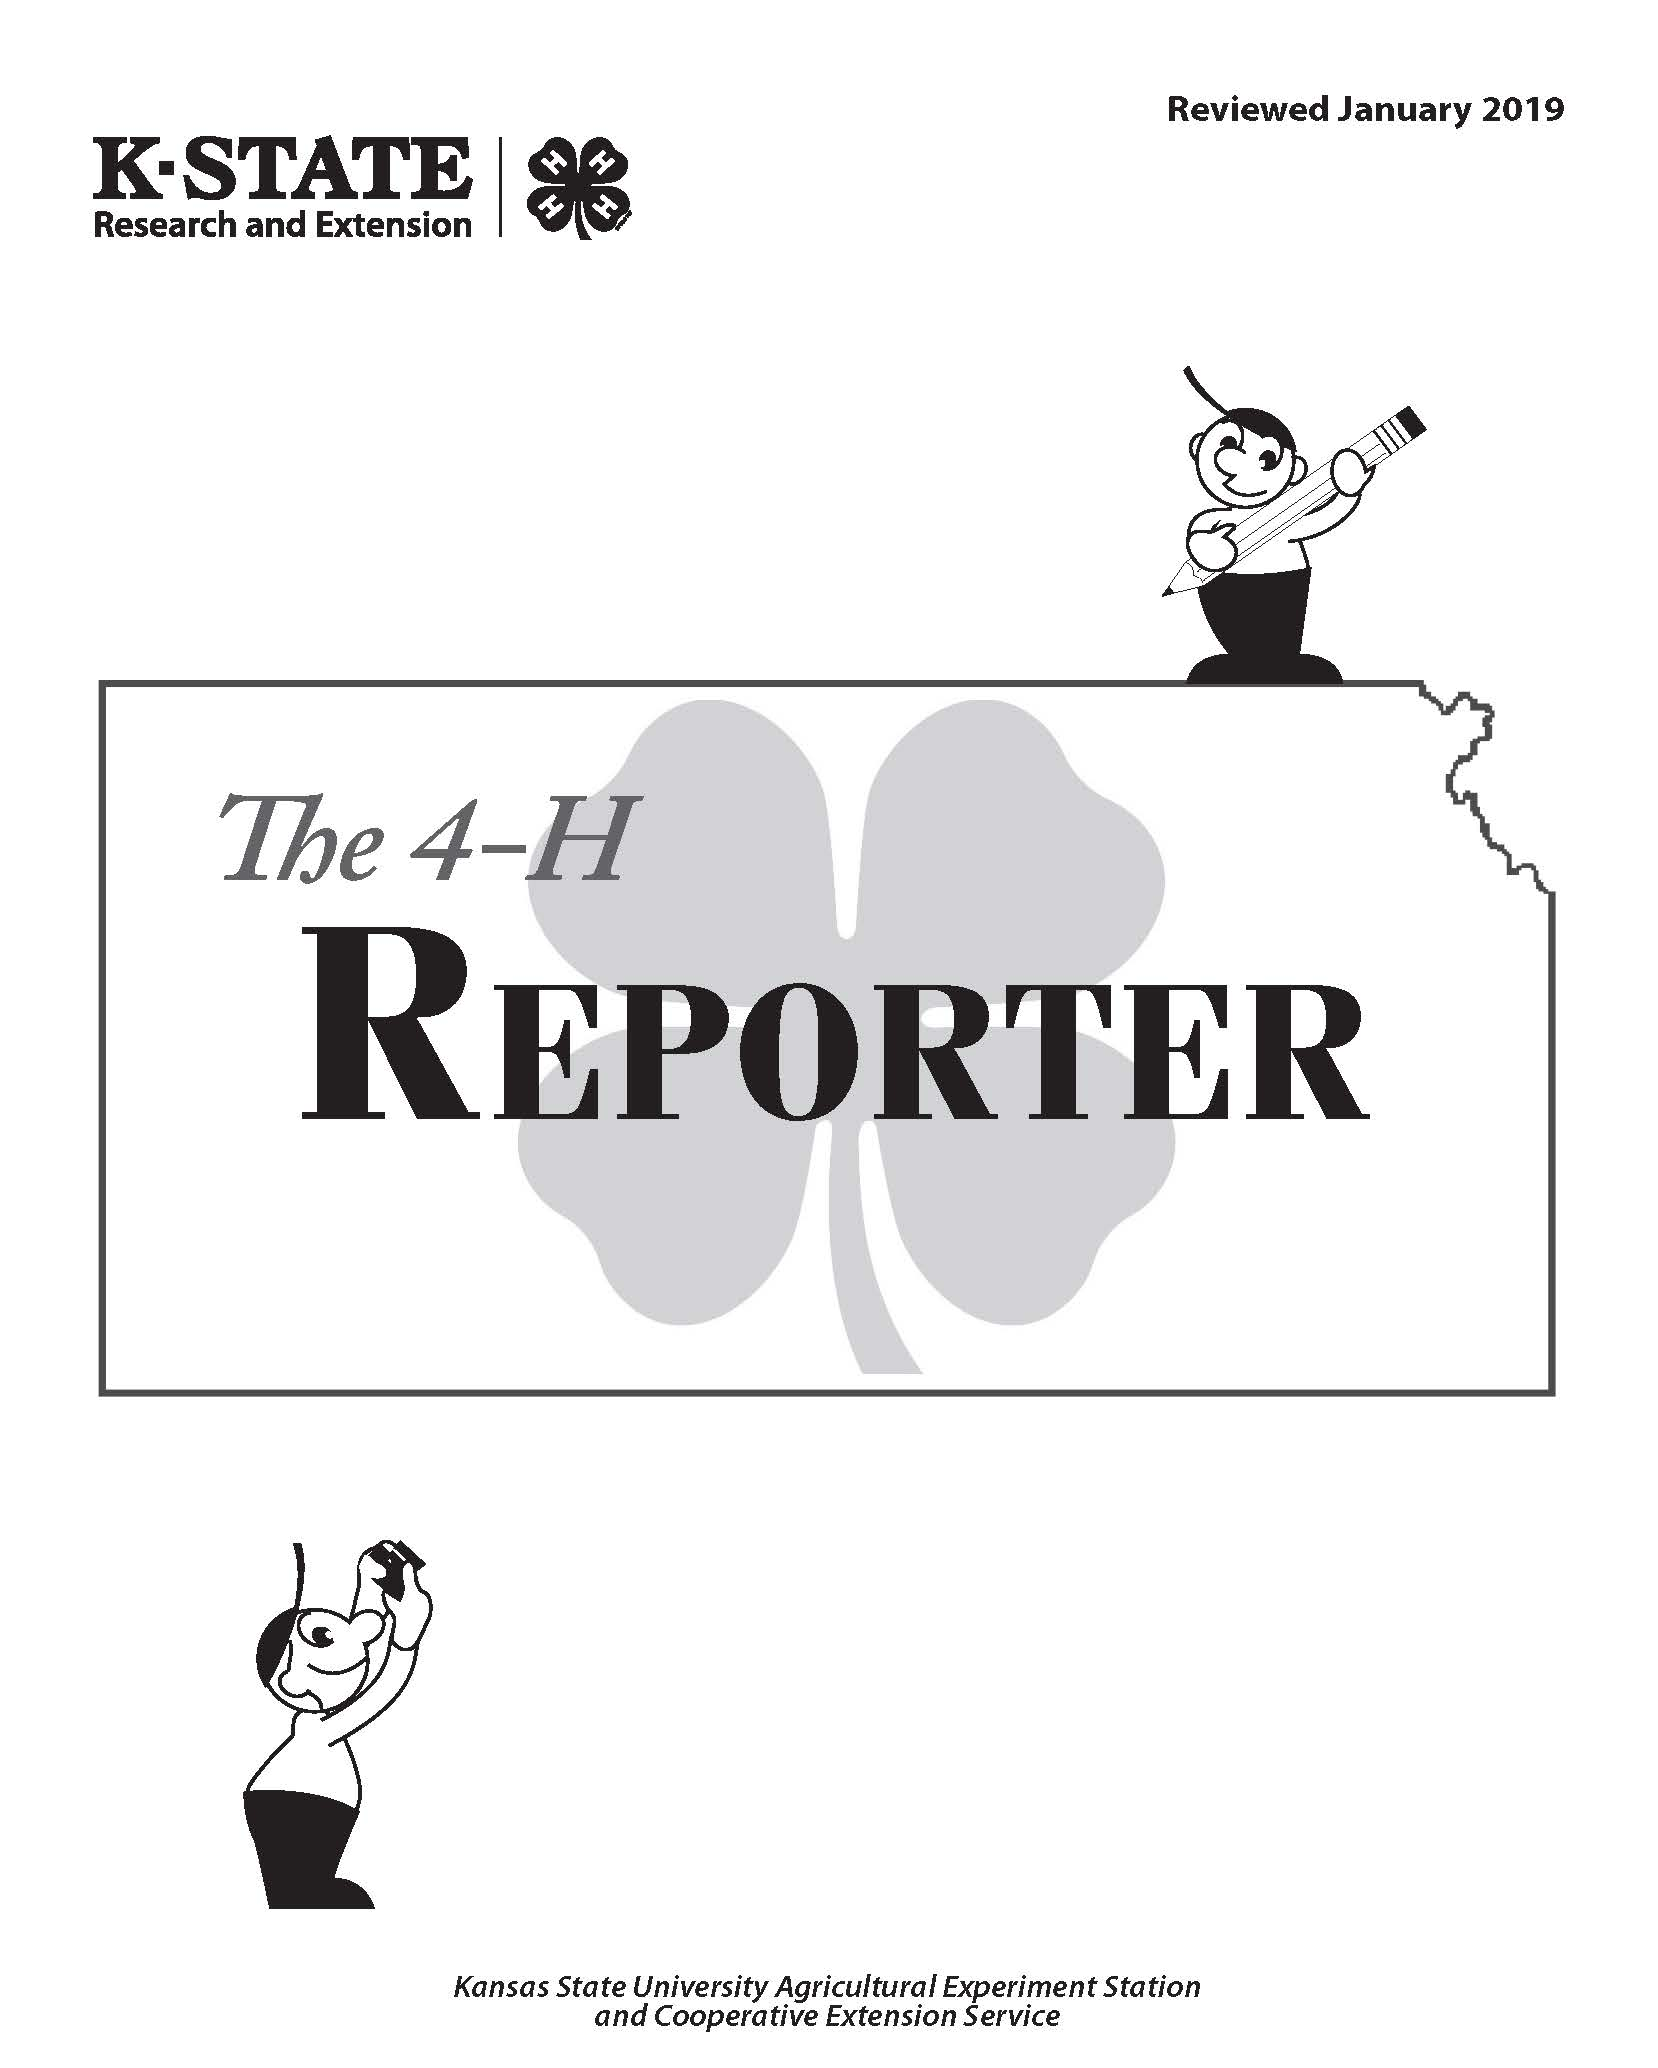 The 4-H Reporter